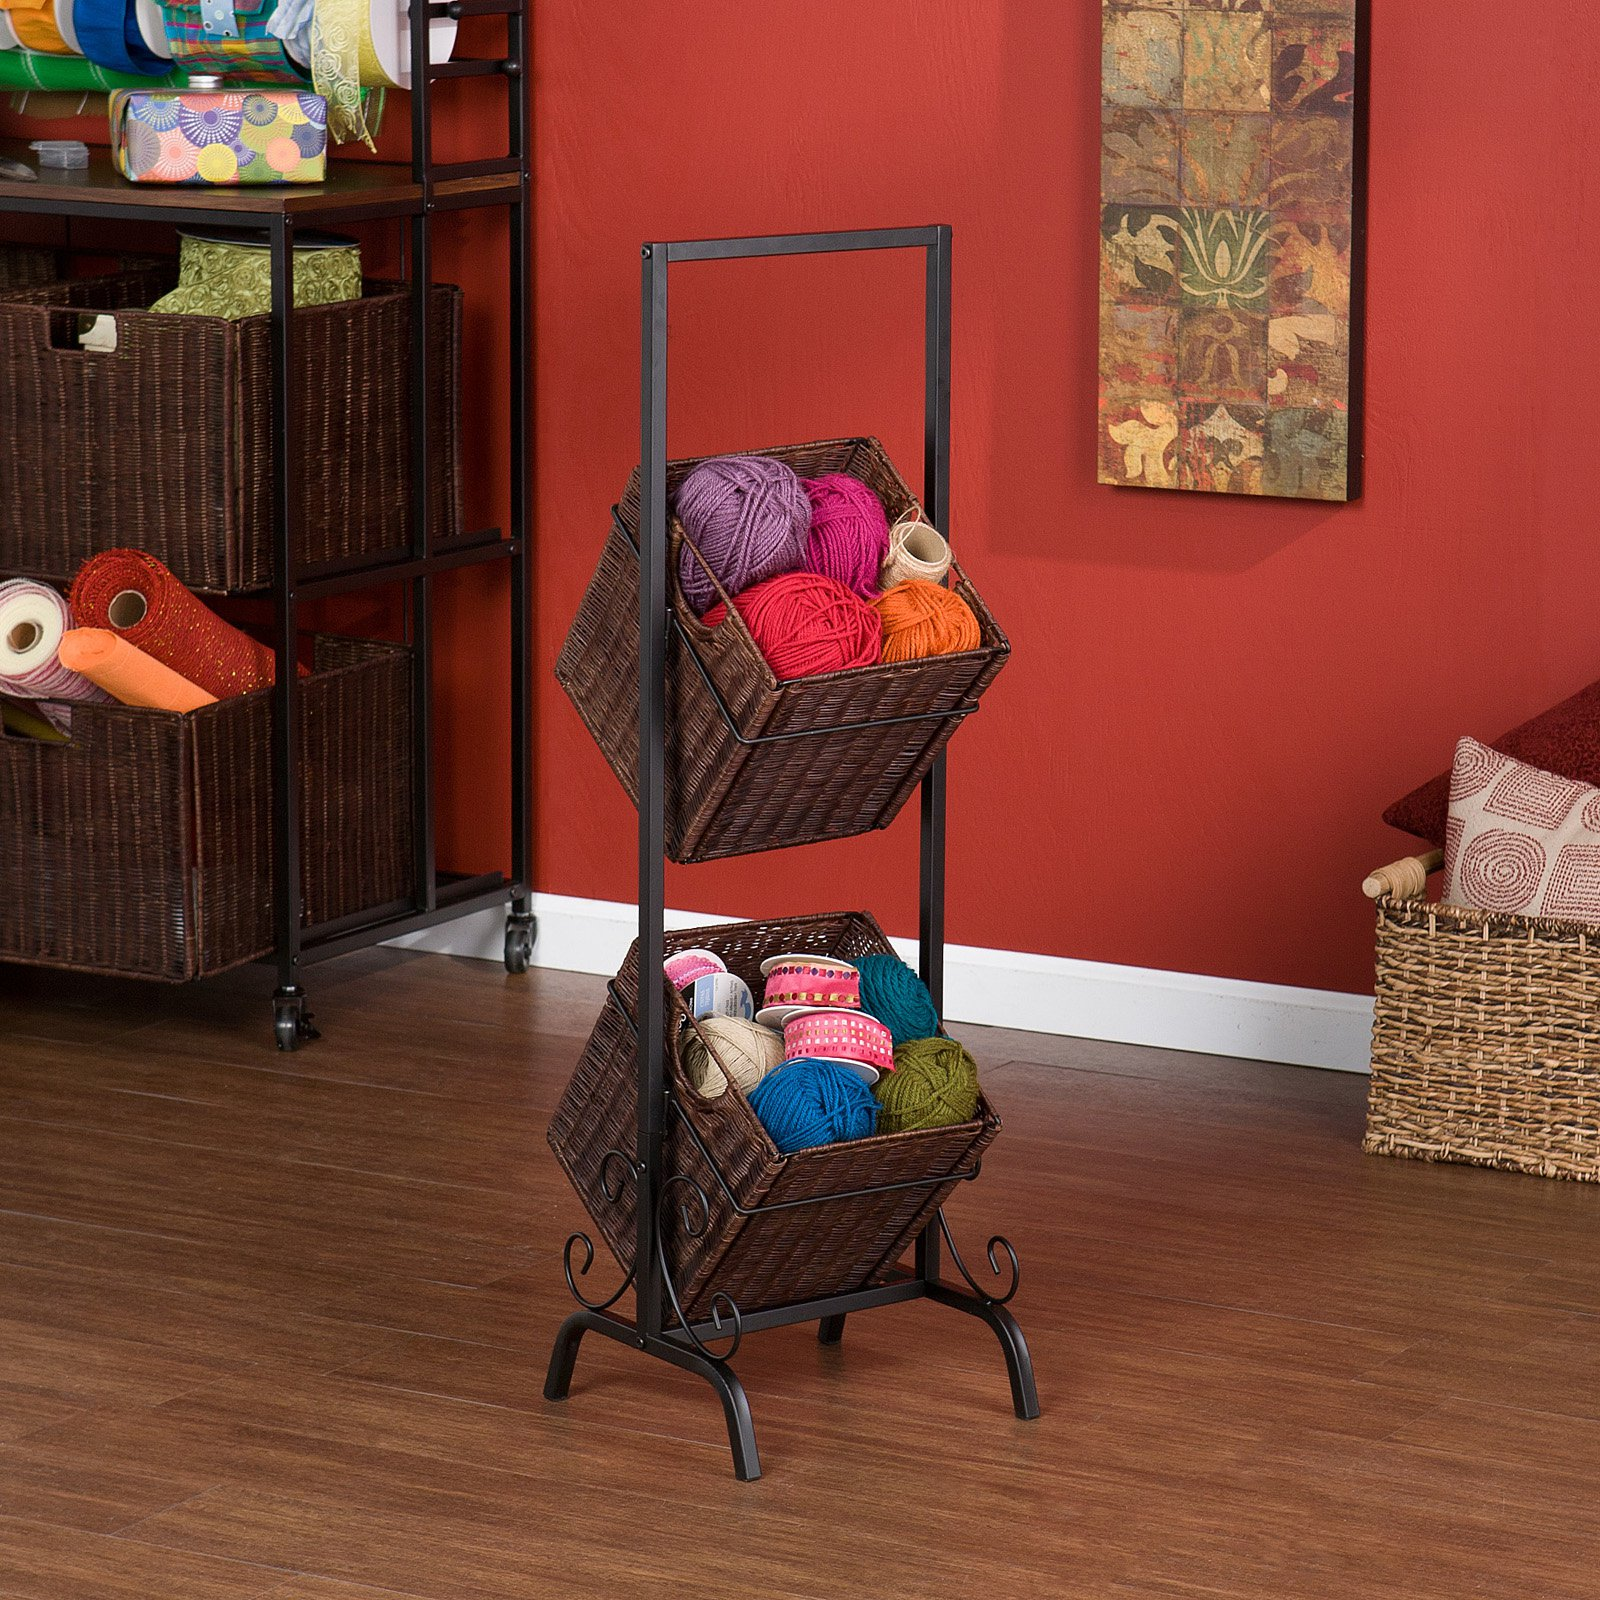 Tiered basket yarn storage